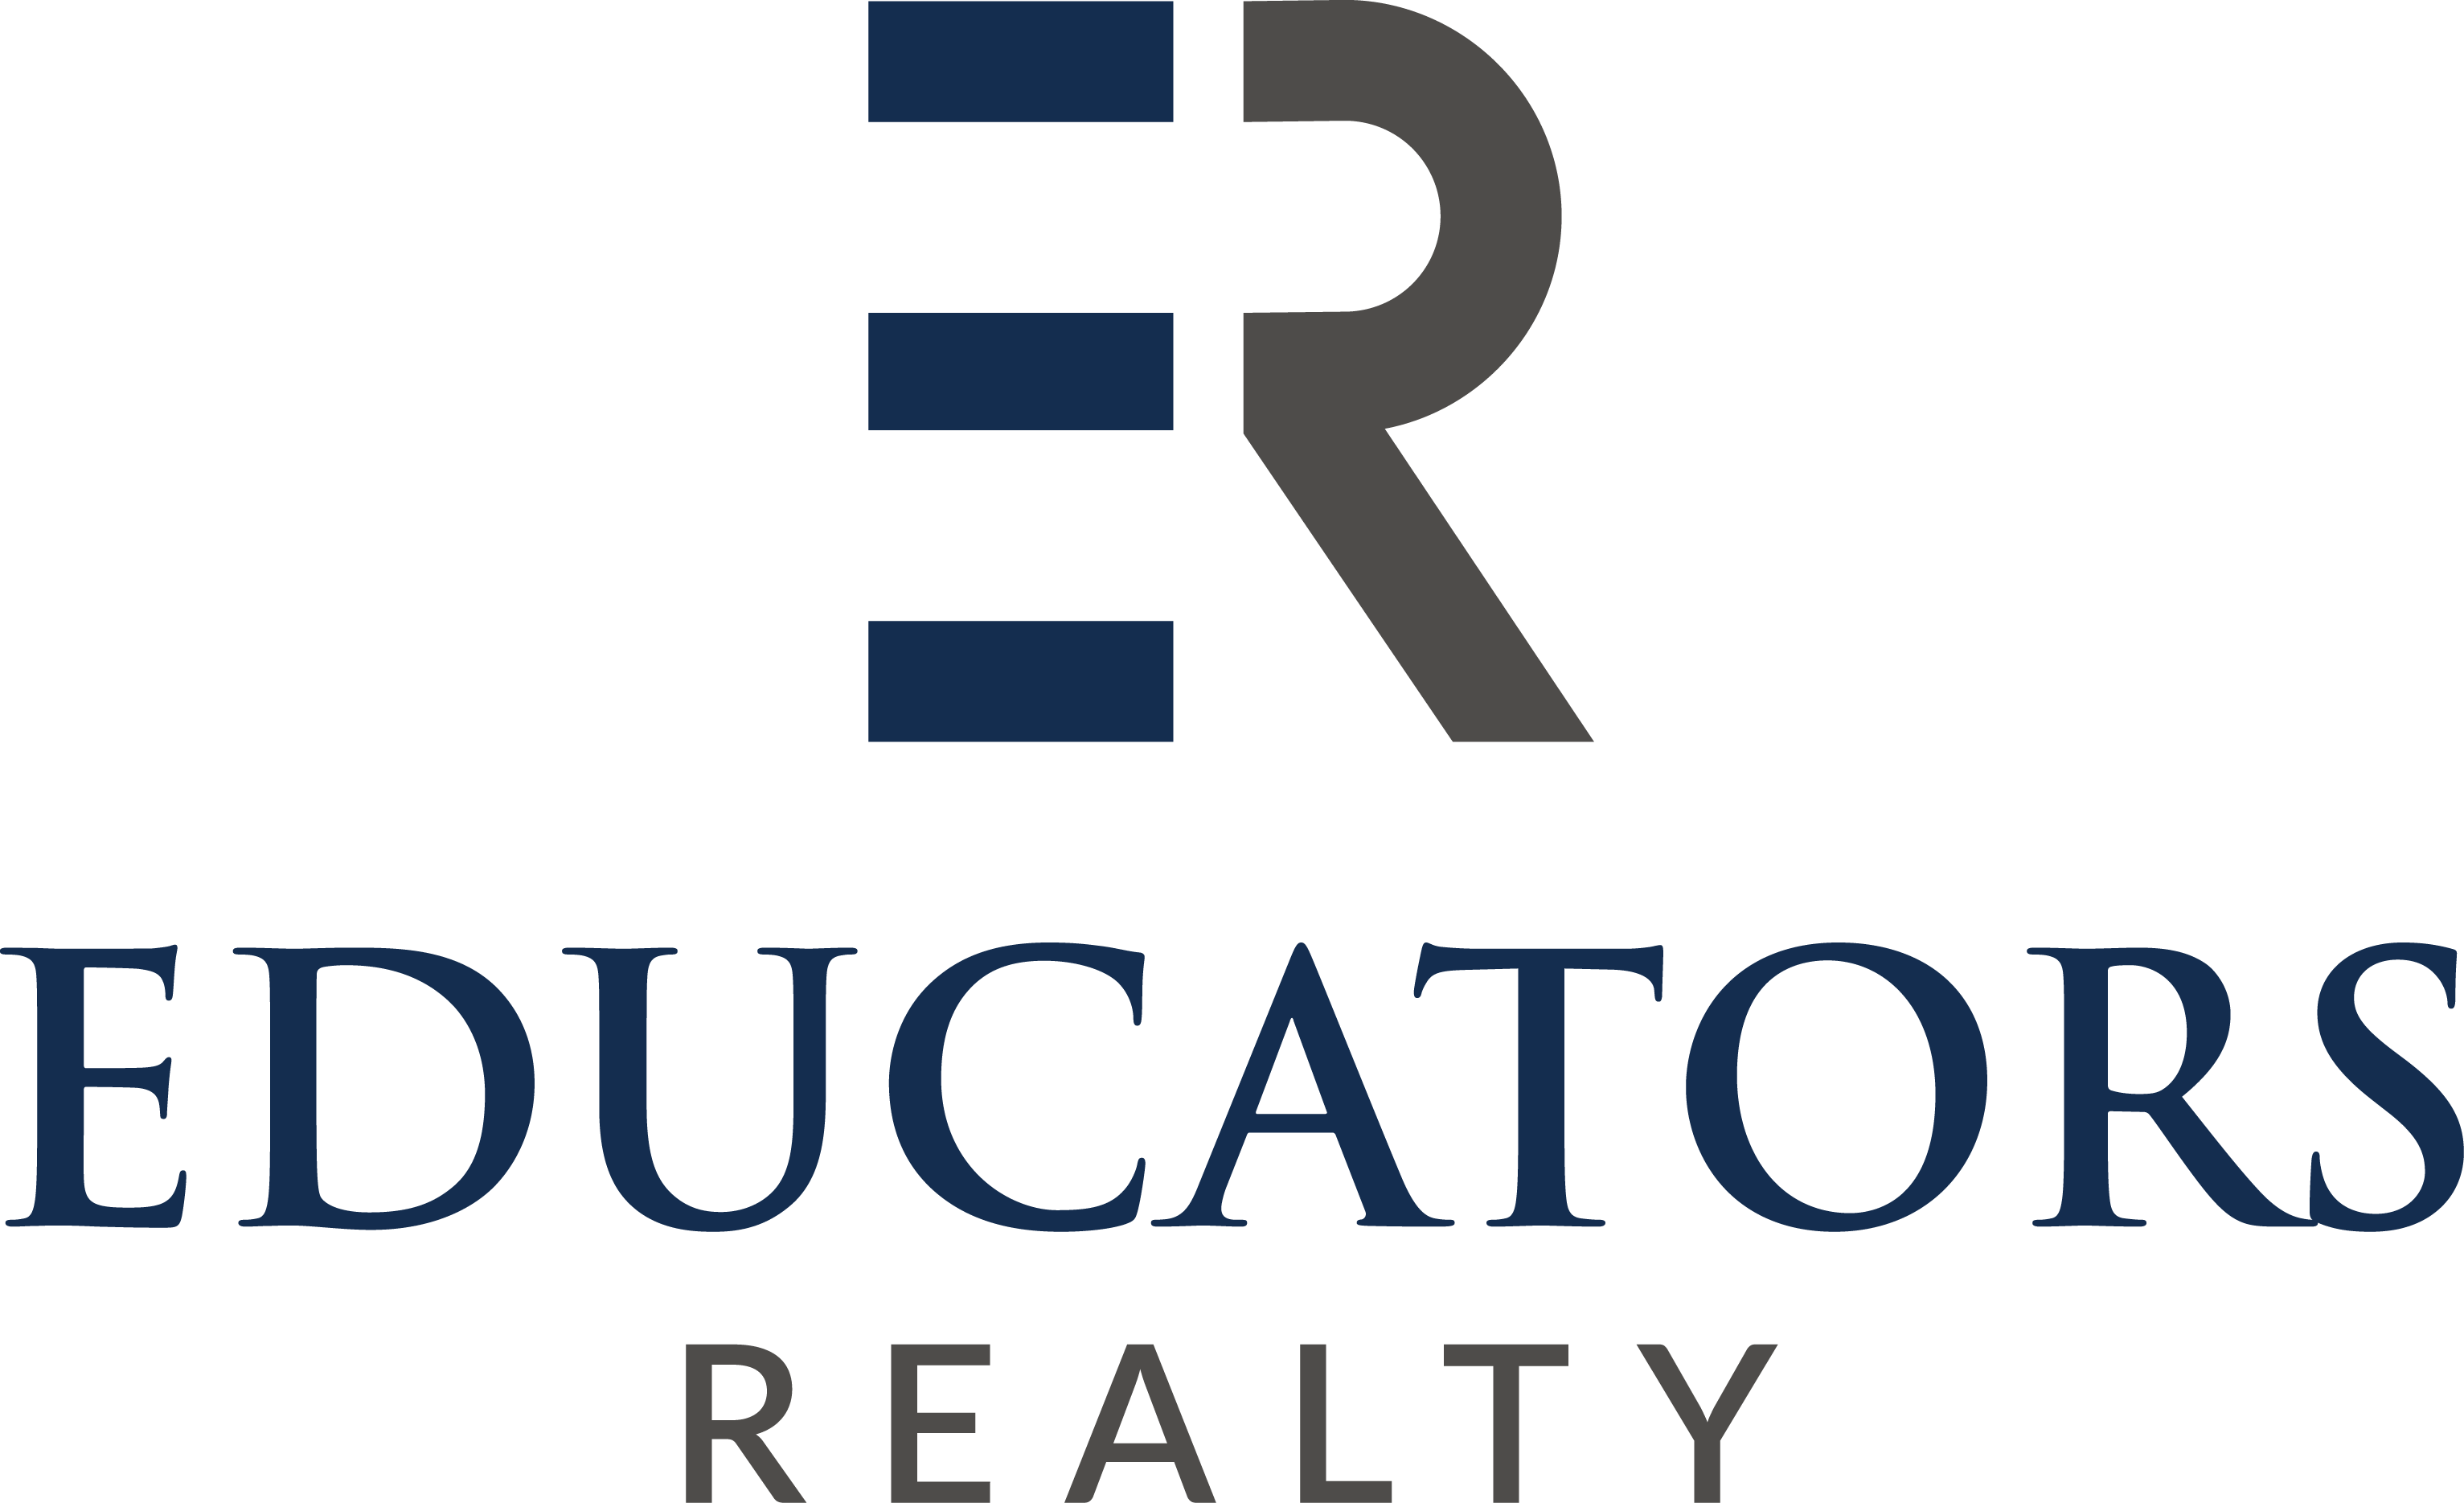 Educators Realty